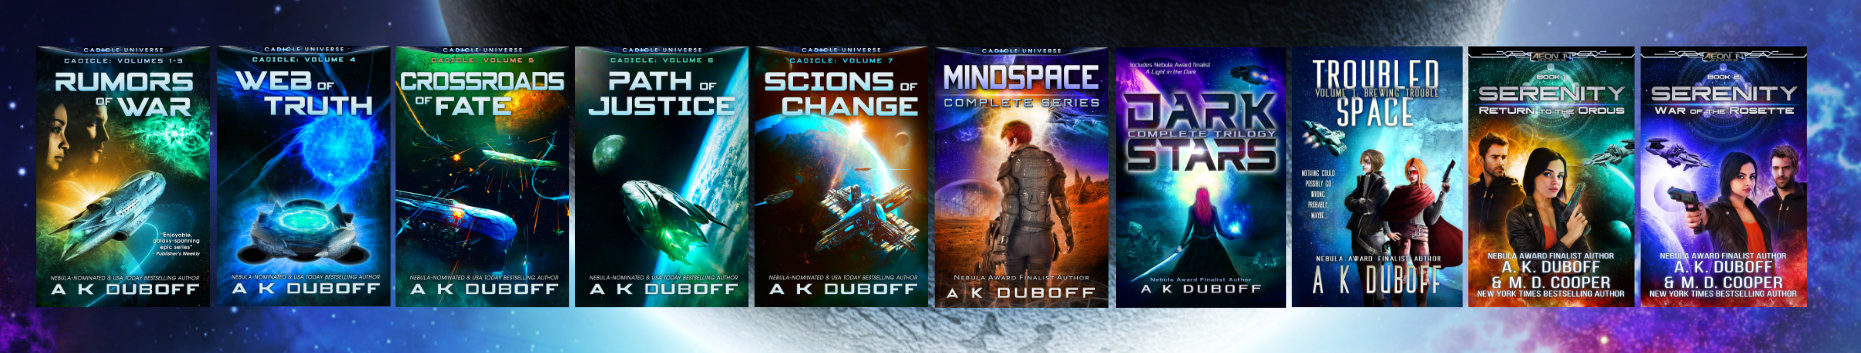 Selection of books by A.K. DuBoff